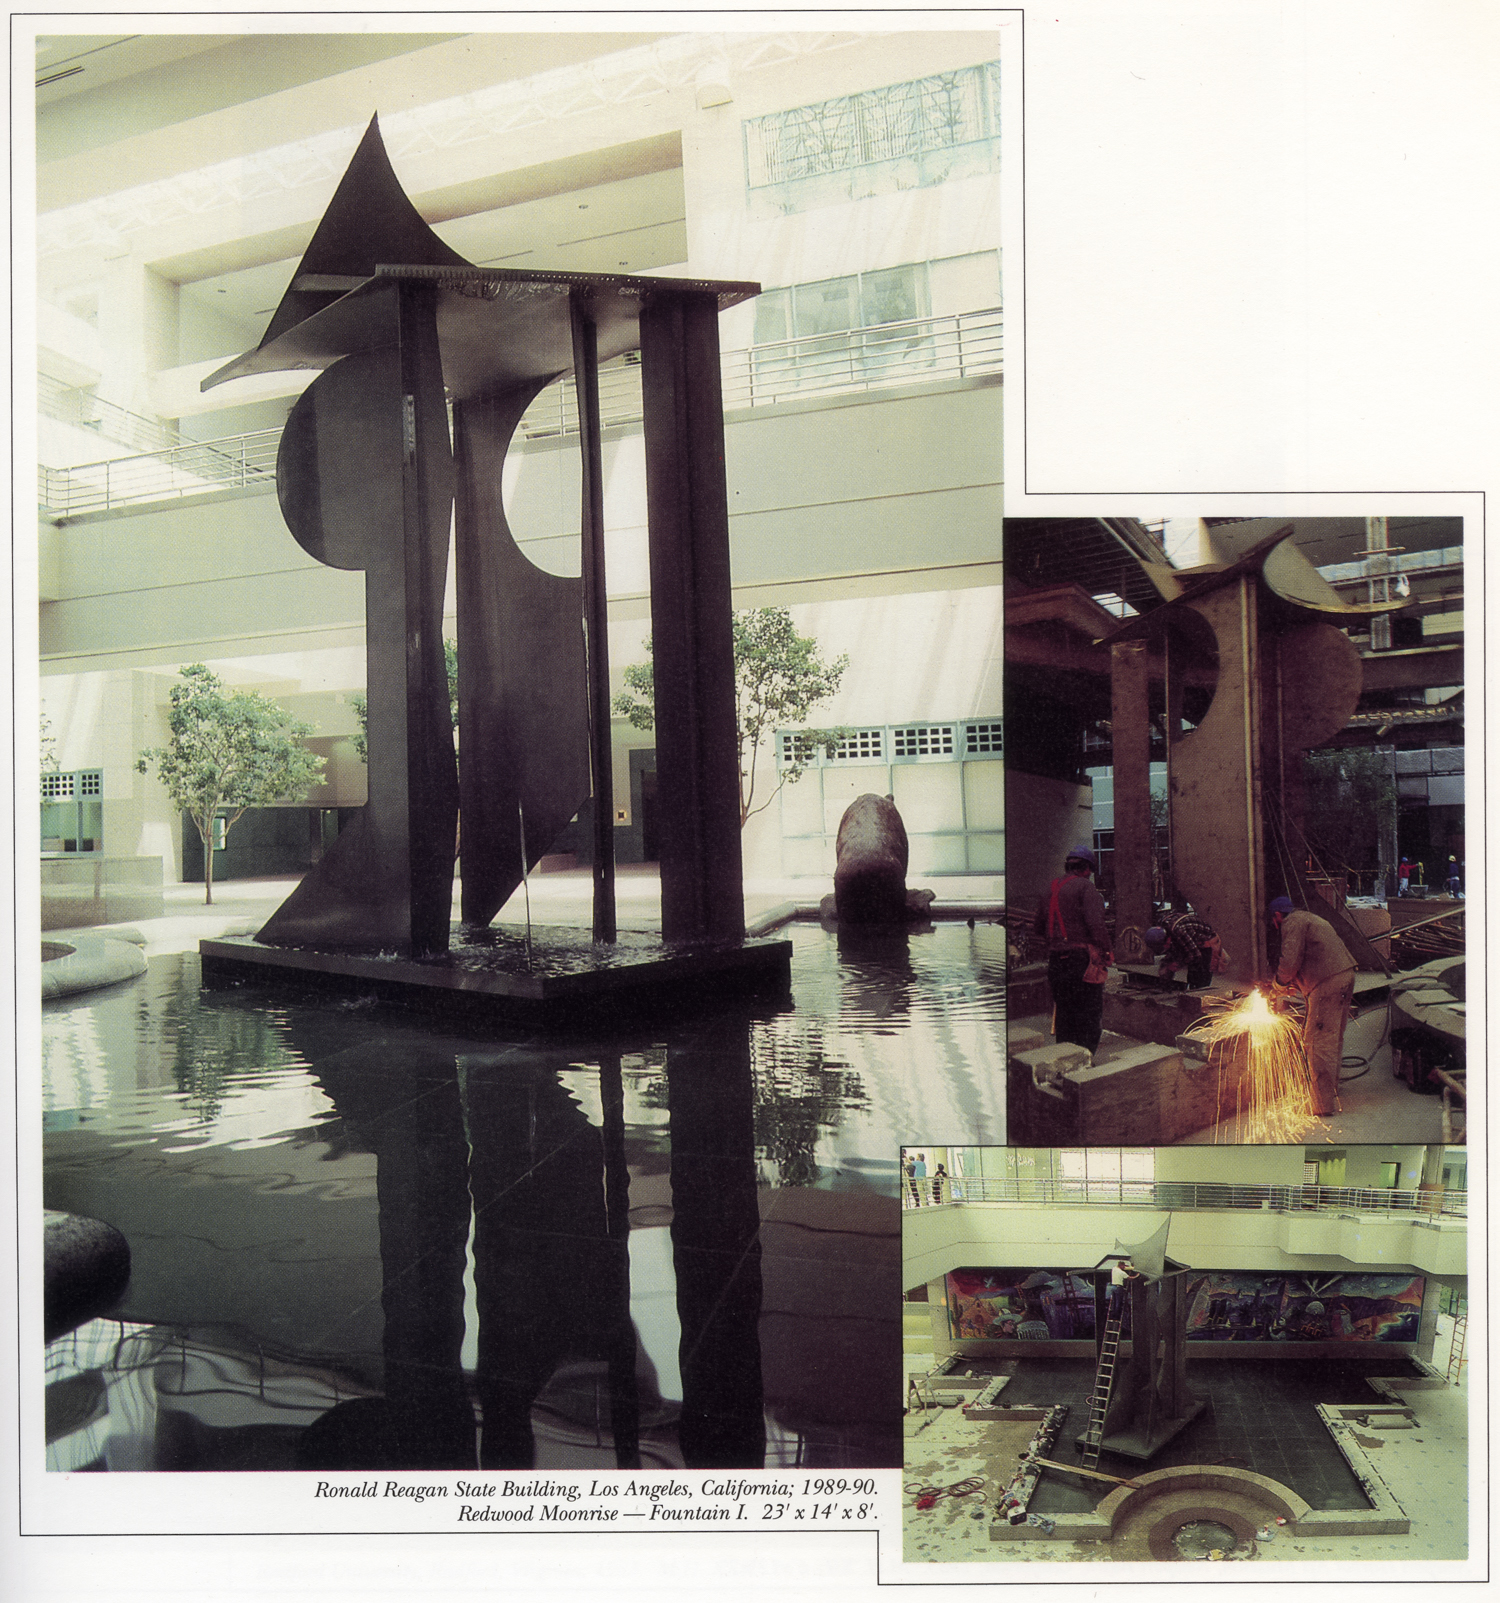 Ronald Reagan State Building, Los Angeles, California; 1989-90.<br>Redwood Moonrise – Fountain I.  23' x 14' x 8'.